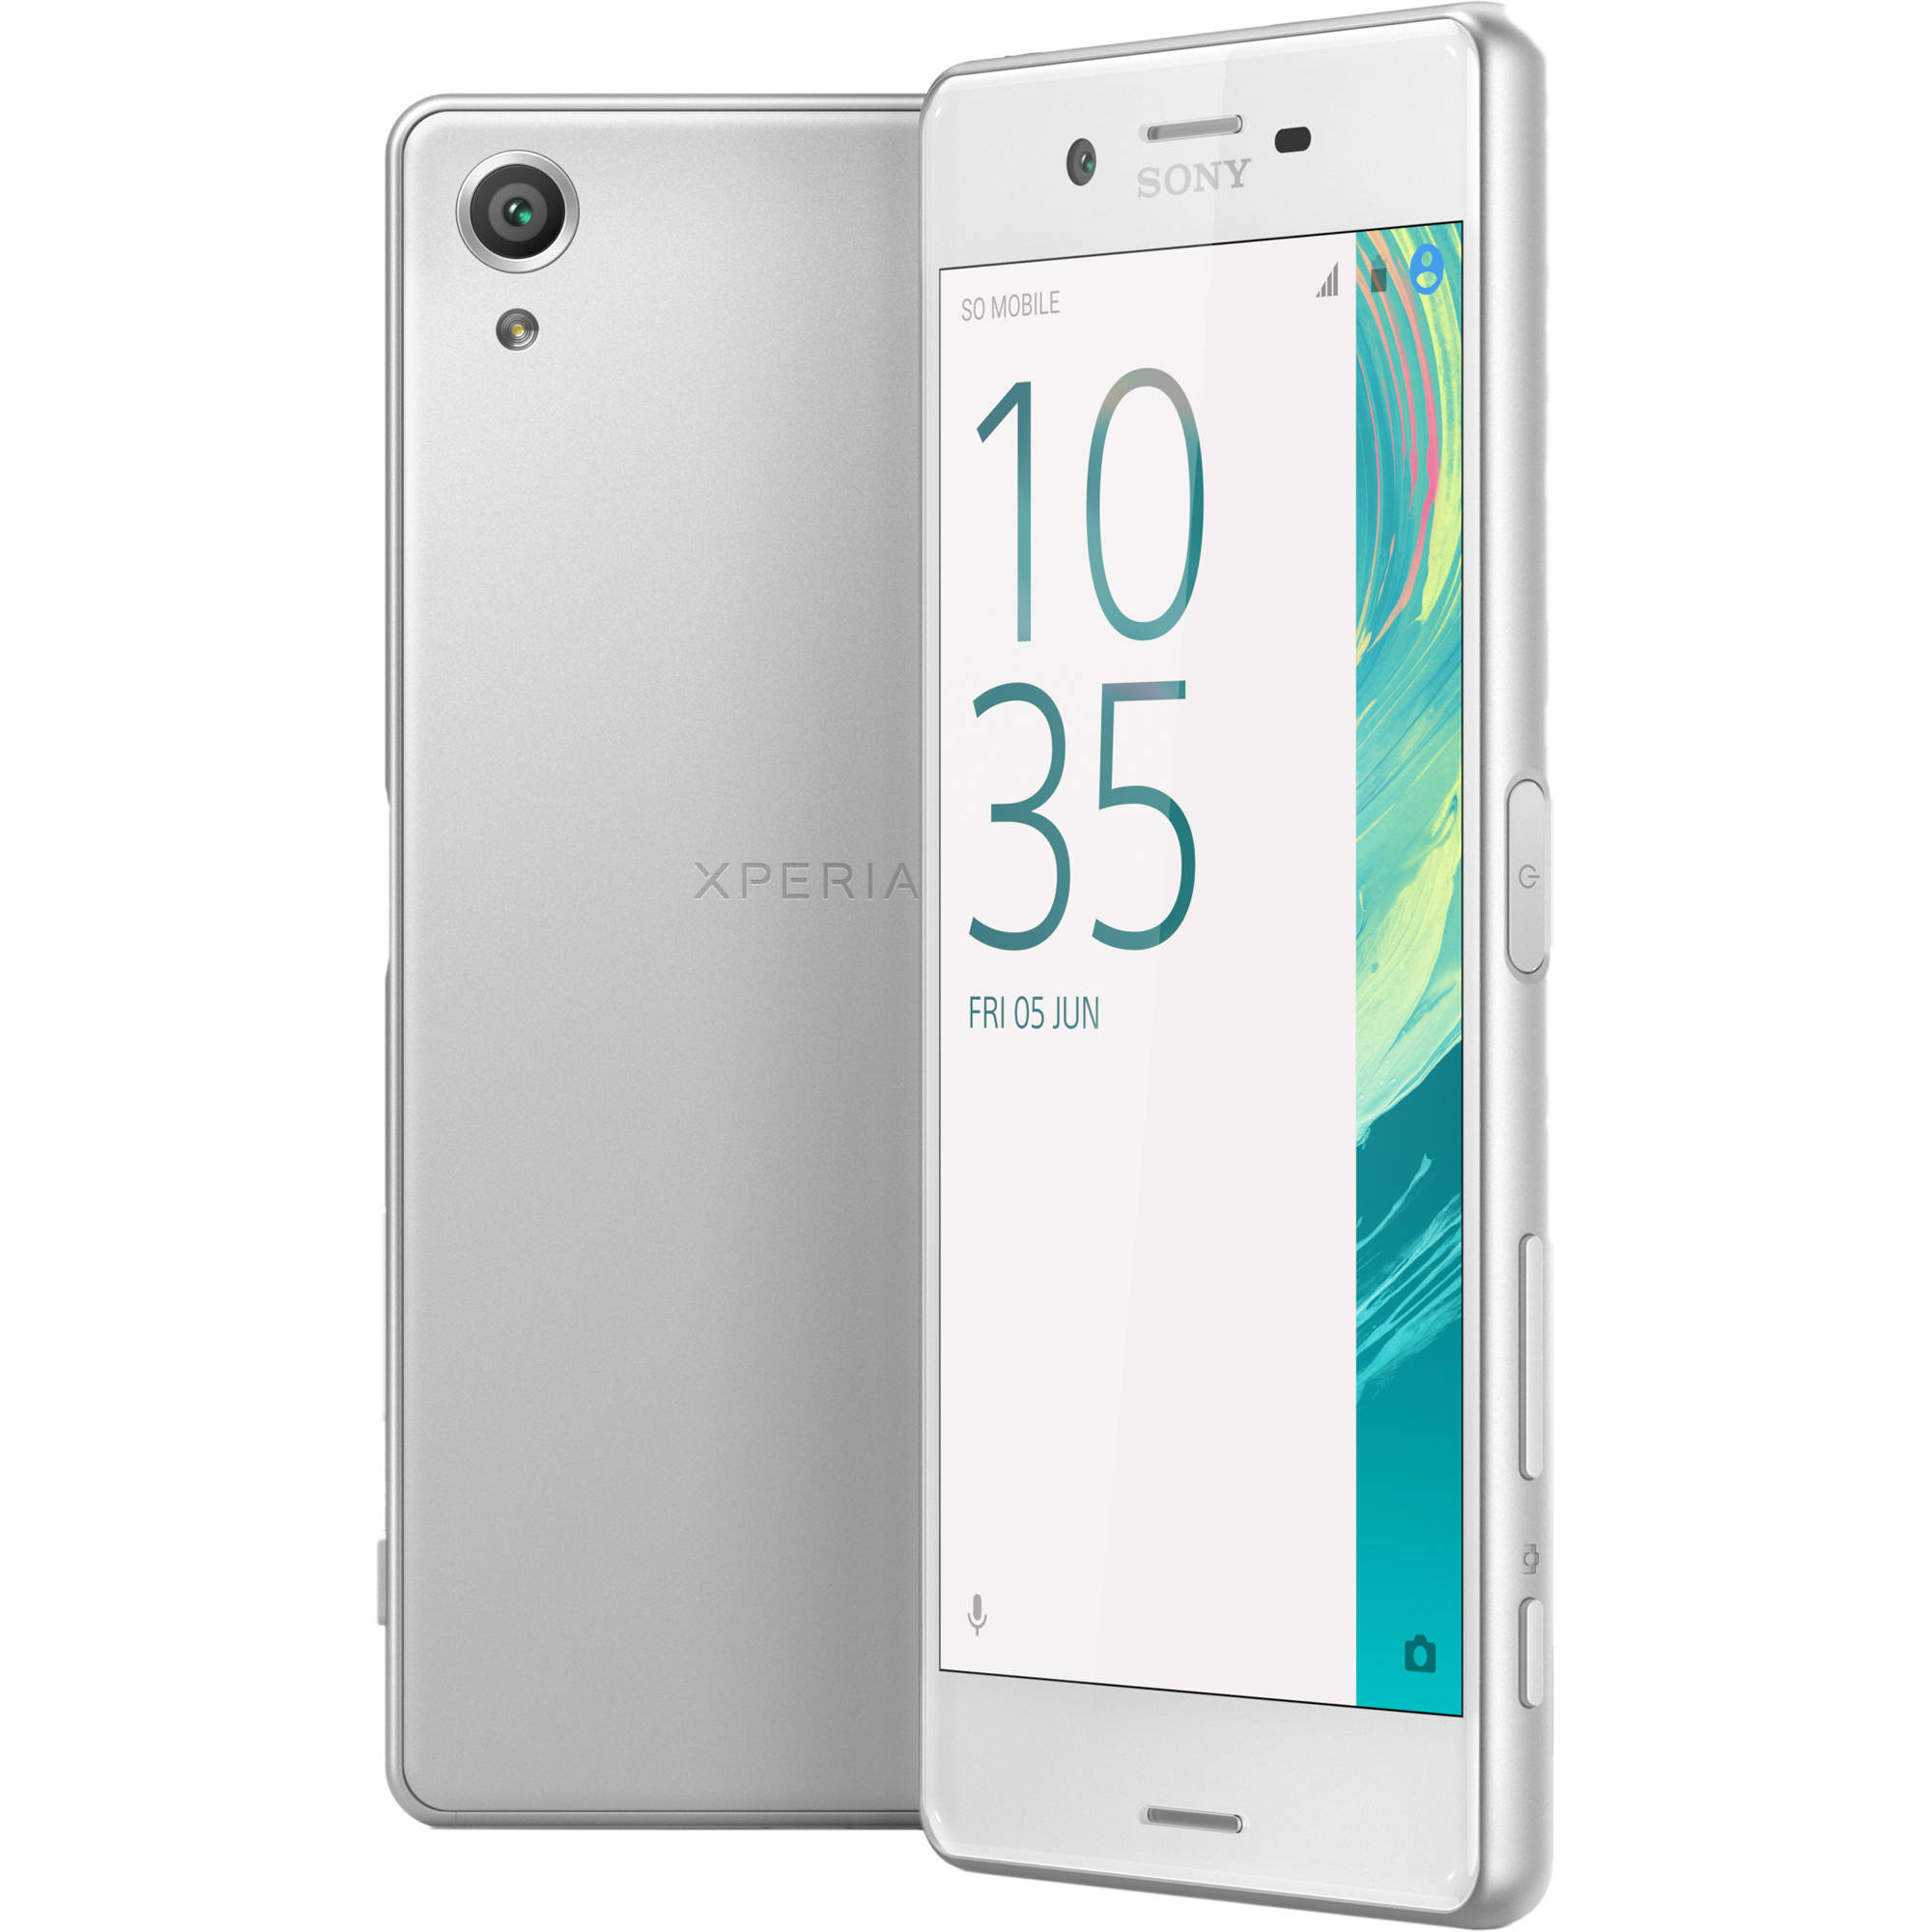 sony xperia x f5121 32gb smartphone unlocked white 1302 5763. Black Bedroom Furniture Sets. Home Design Ideas